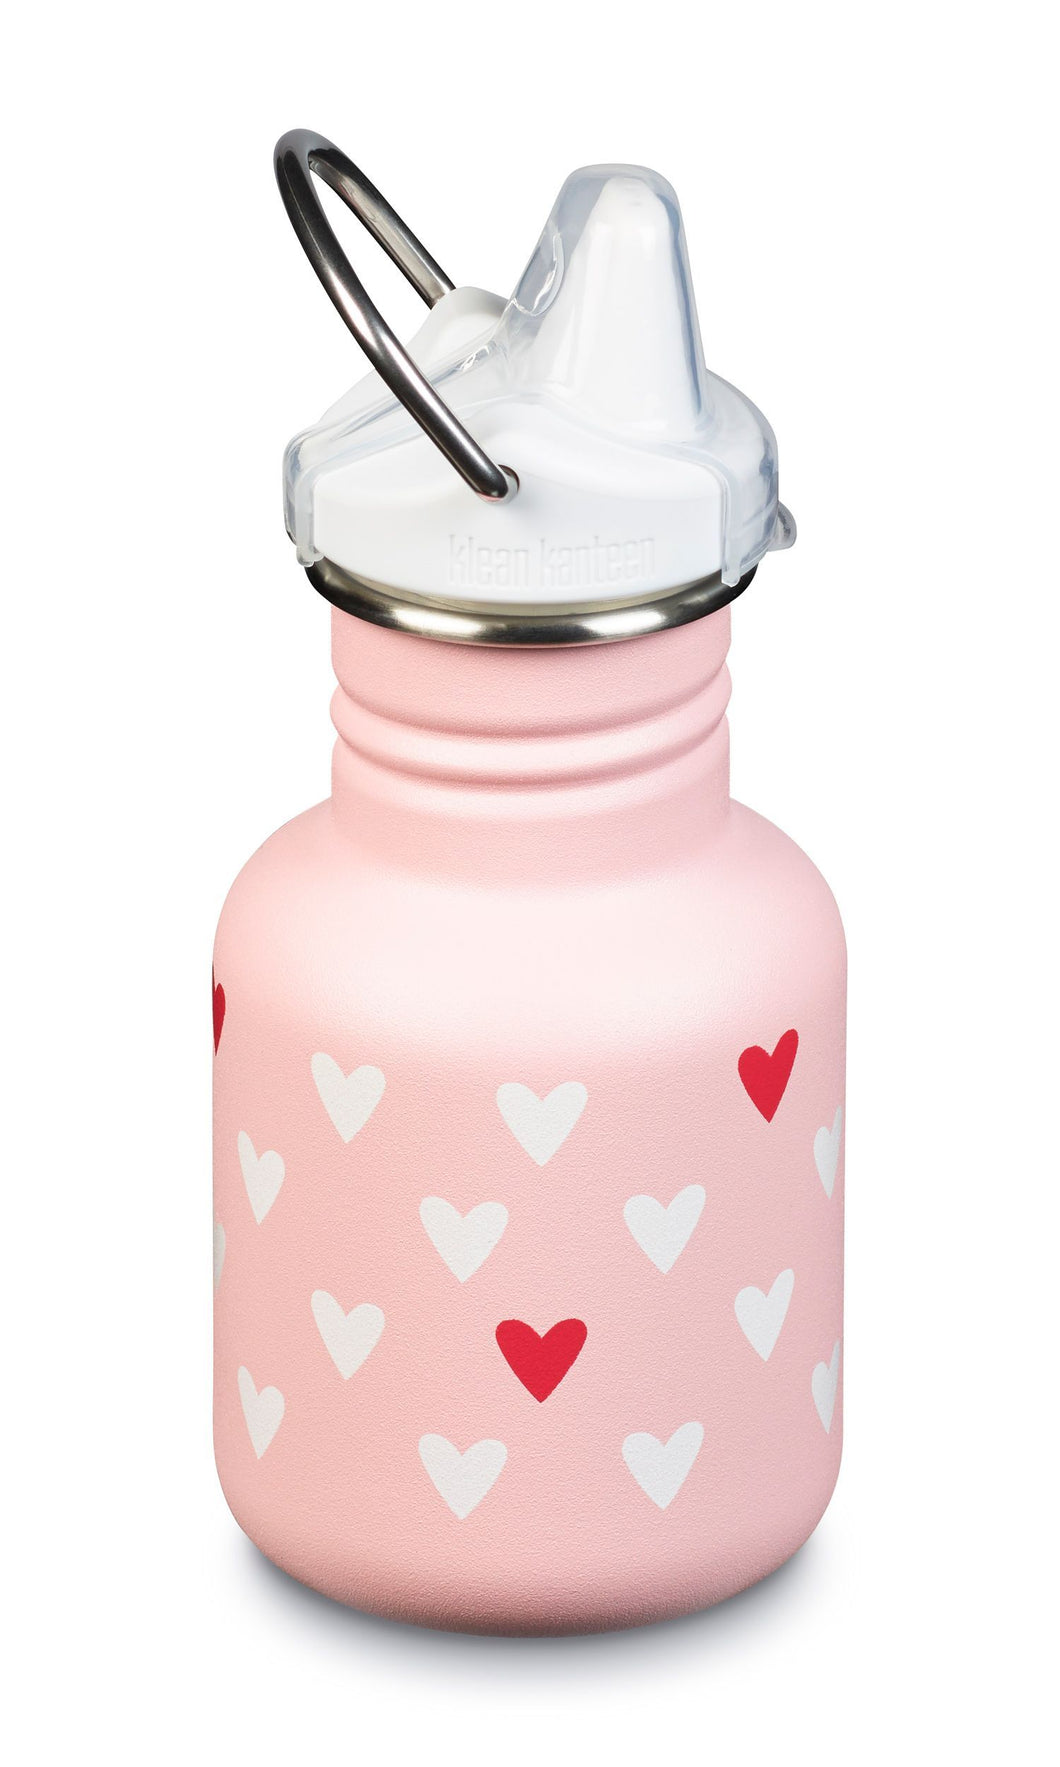 Matte light pink stainless steel bottle with a white sippy cap with a clear spill proof cover and a stainless steel swivel handle. White and red hearts printed on bottle.